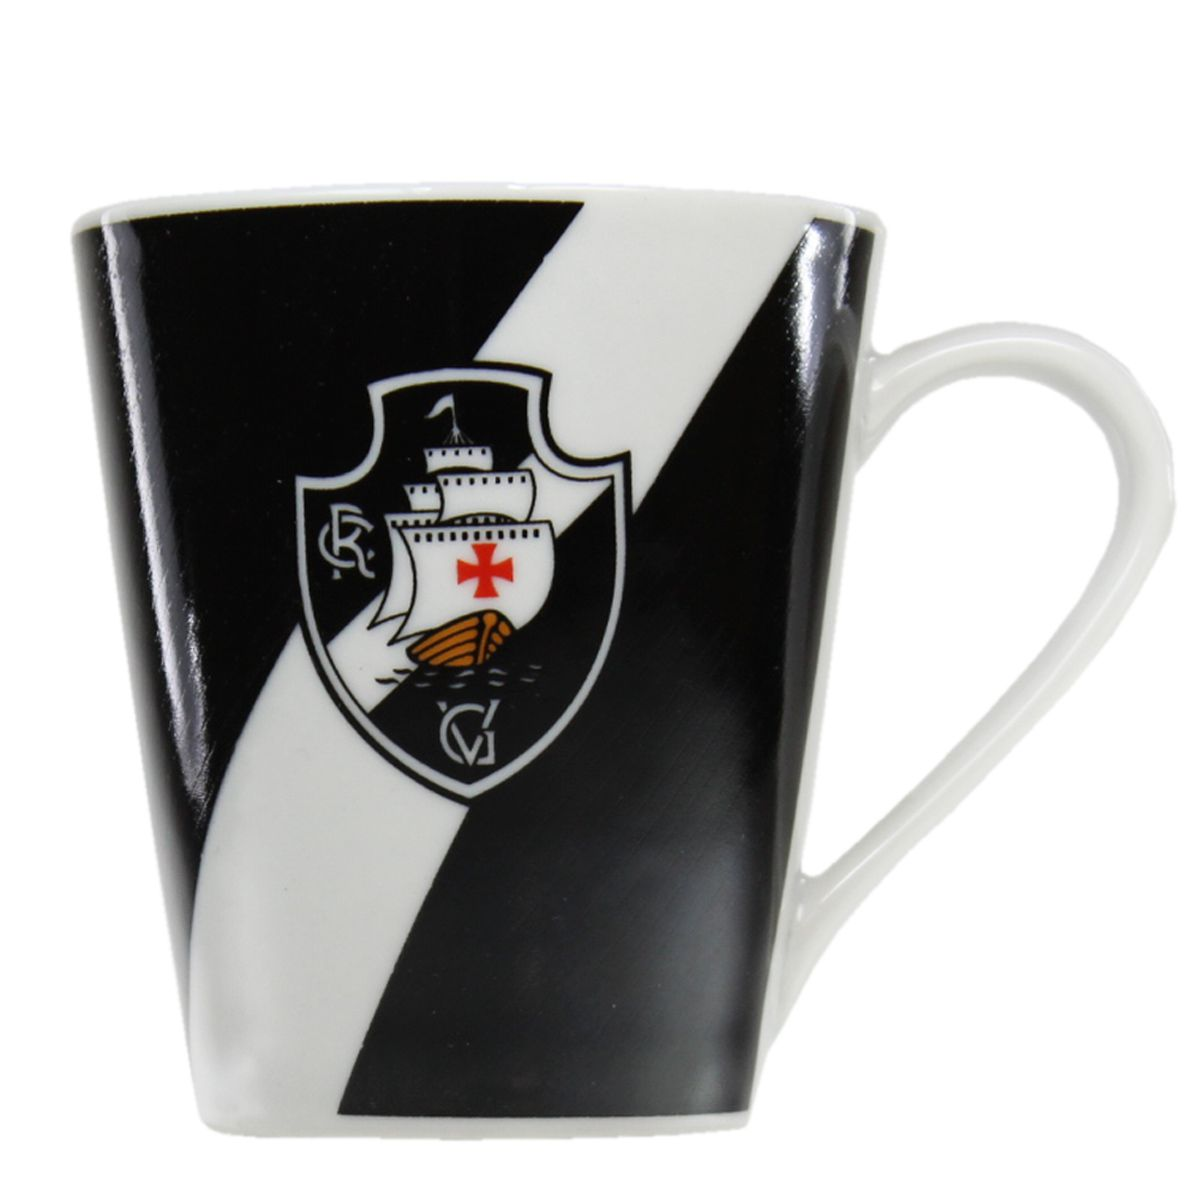 Caneca Porcelana do Vasco da Gama